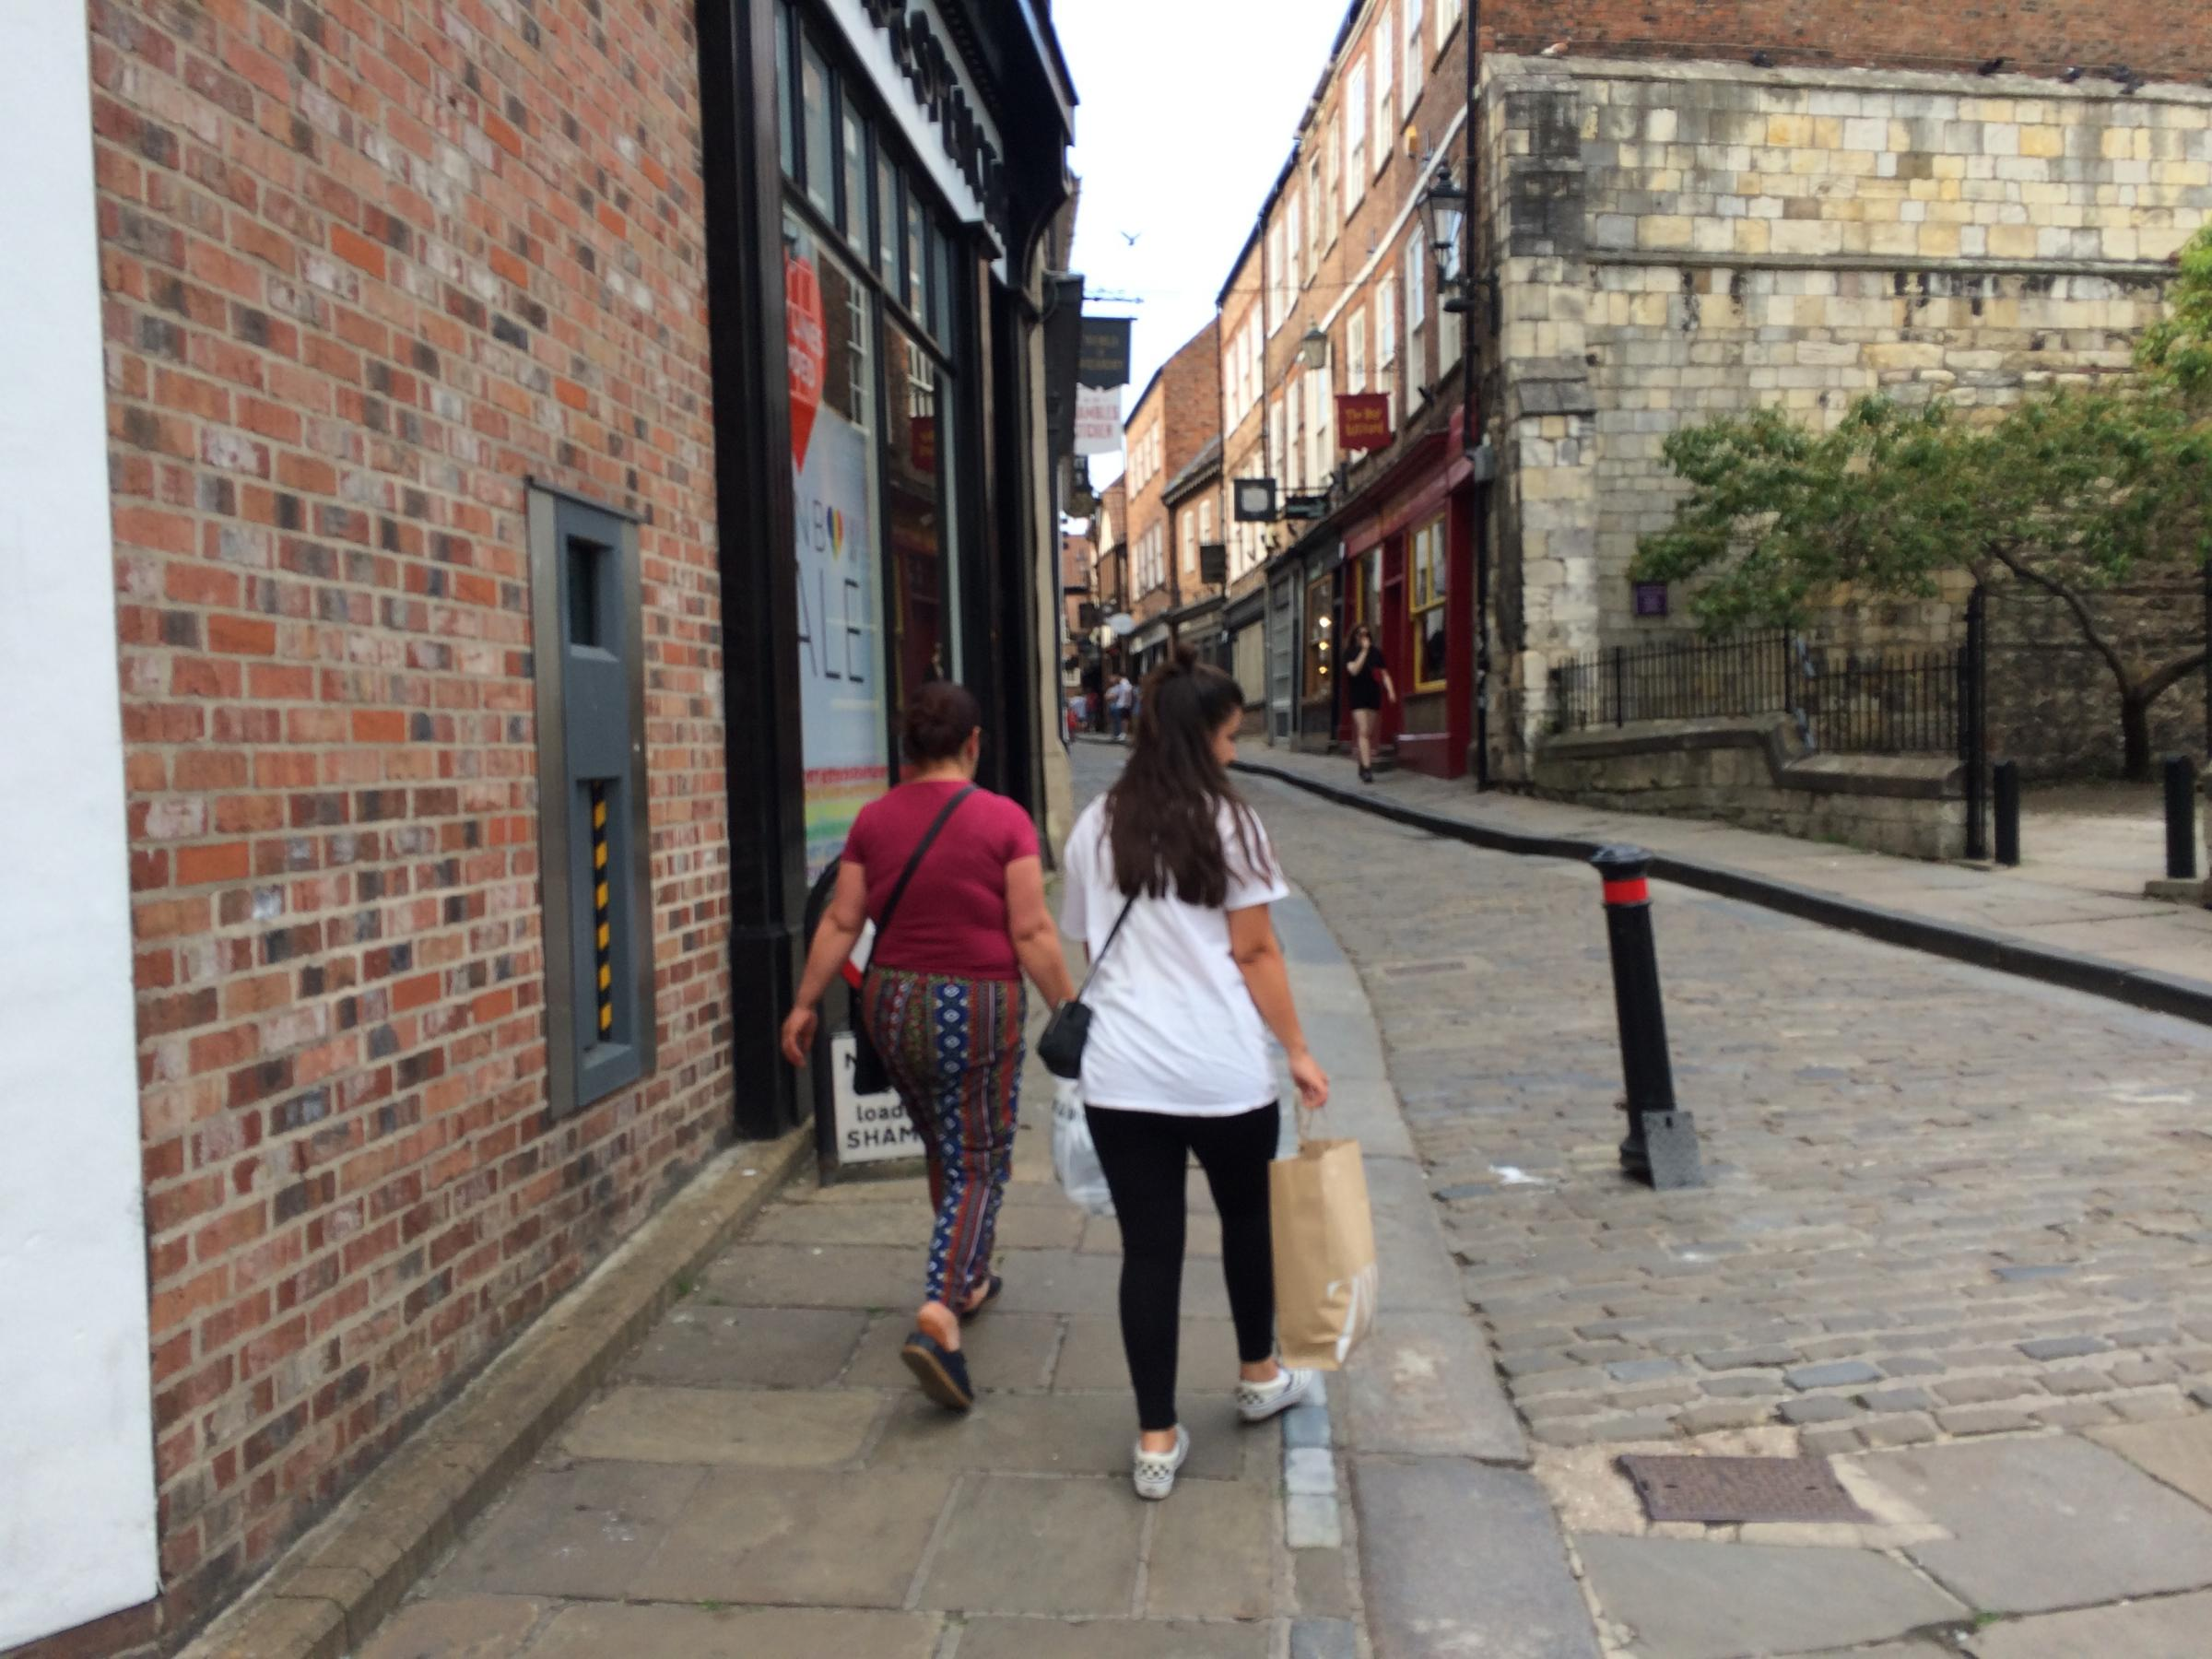 One-way rule in Shambles, York, to be scrapped | York Press